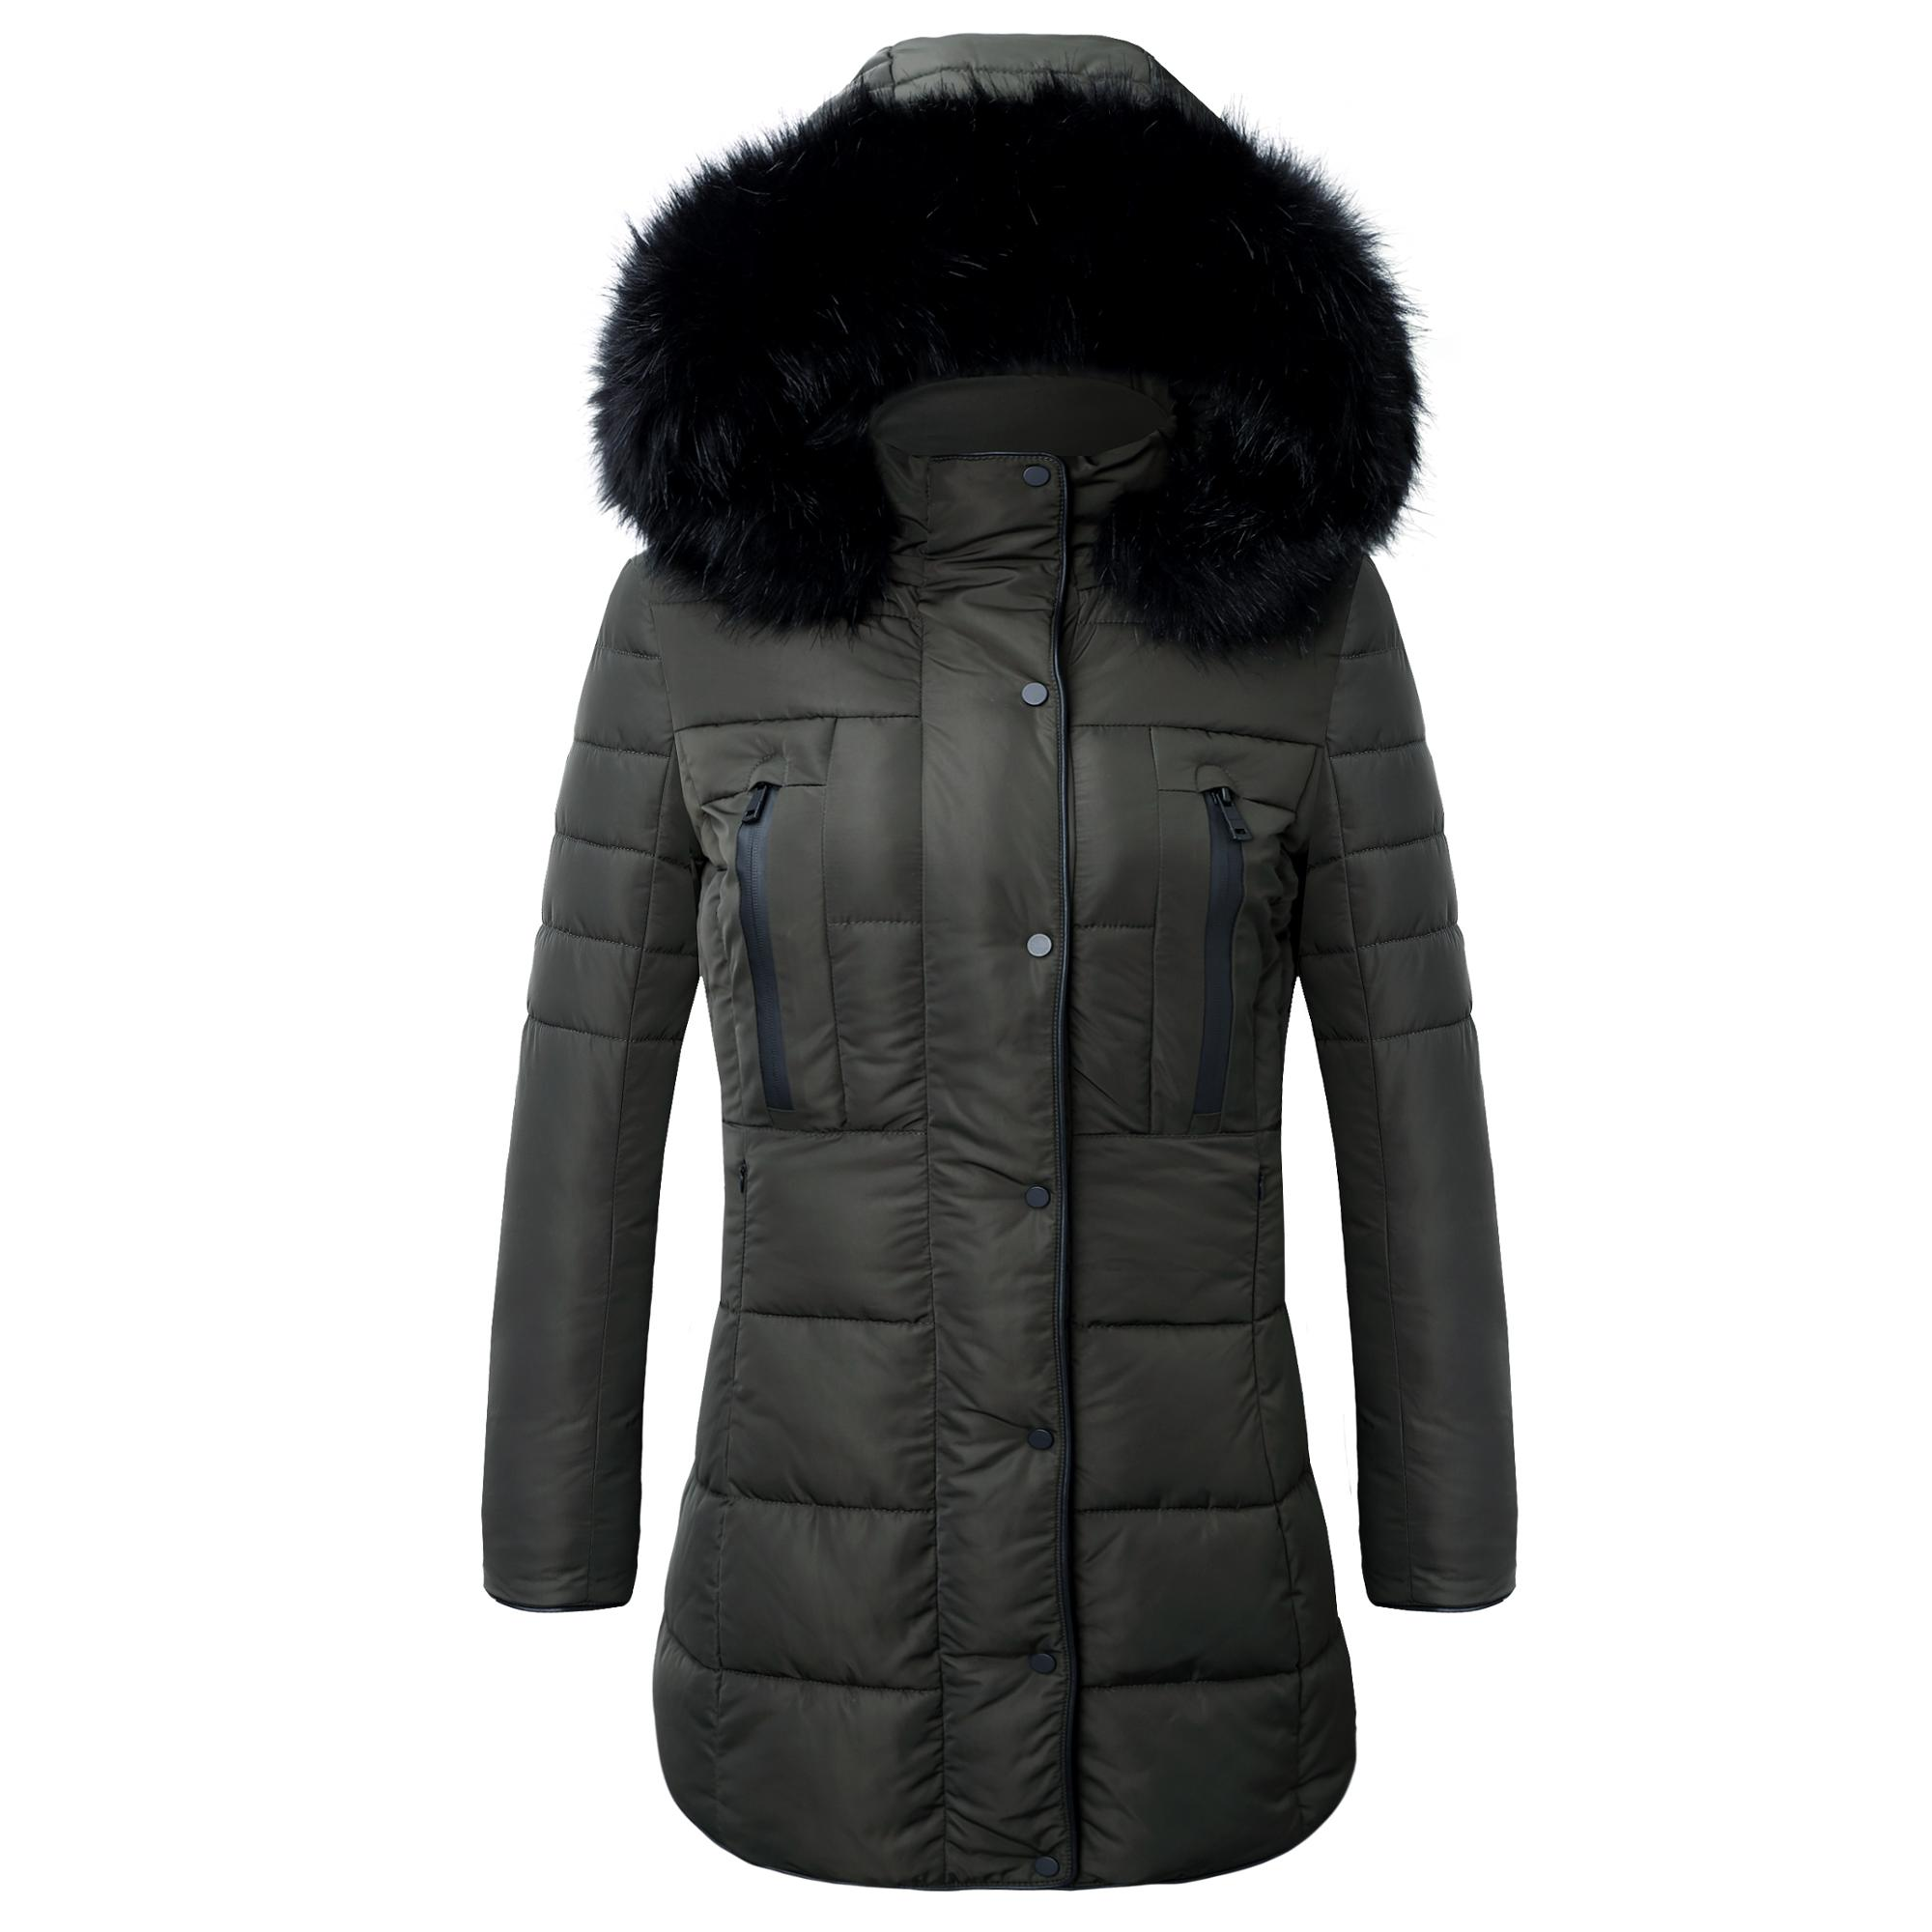 Down Jackets 2019 New Autumn Winter Lightweight Down Jacket Men 90 White Duck Down Coat Mens Stand Collar Ultralight Down Jacket Male Parka Ample Supply And Prompt Delivery